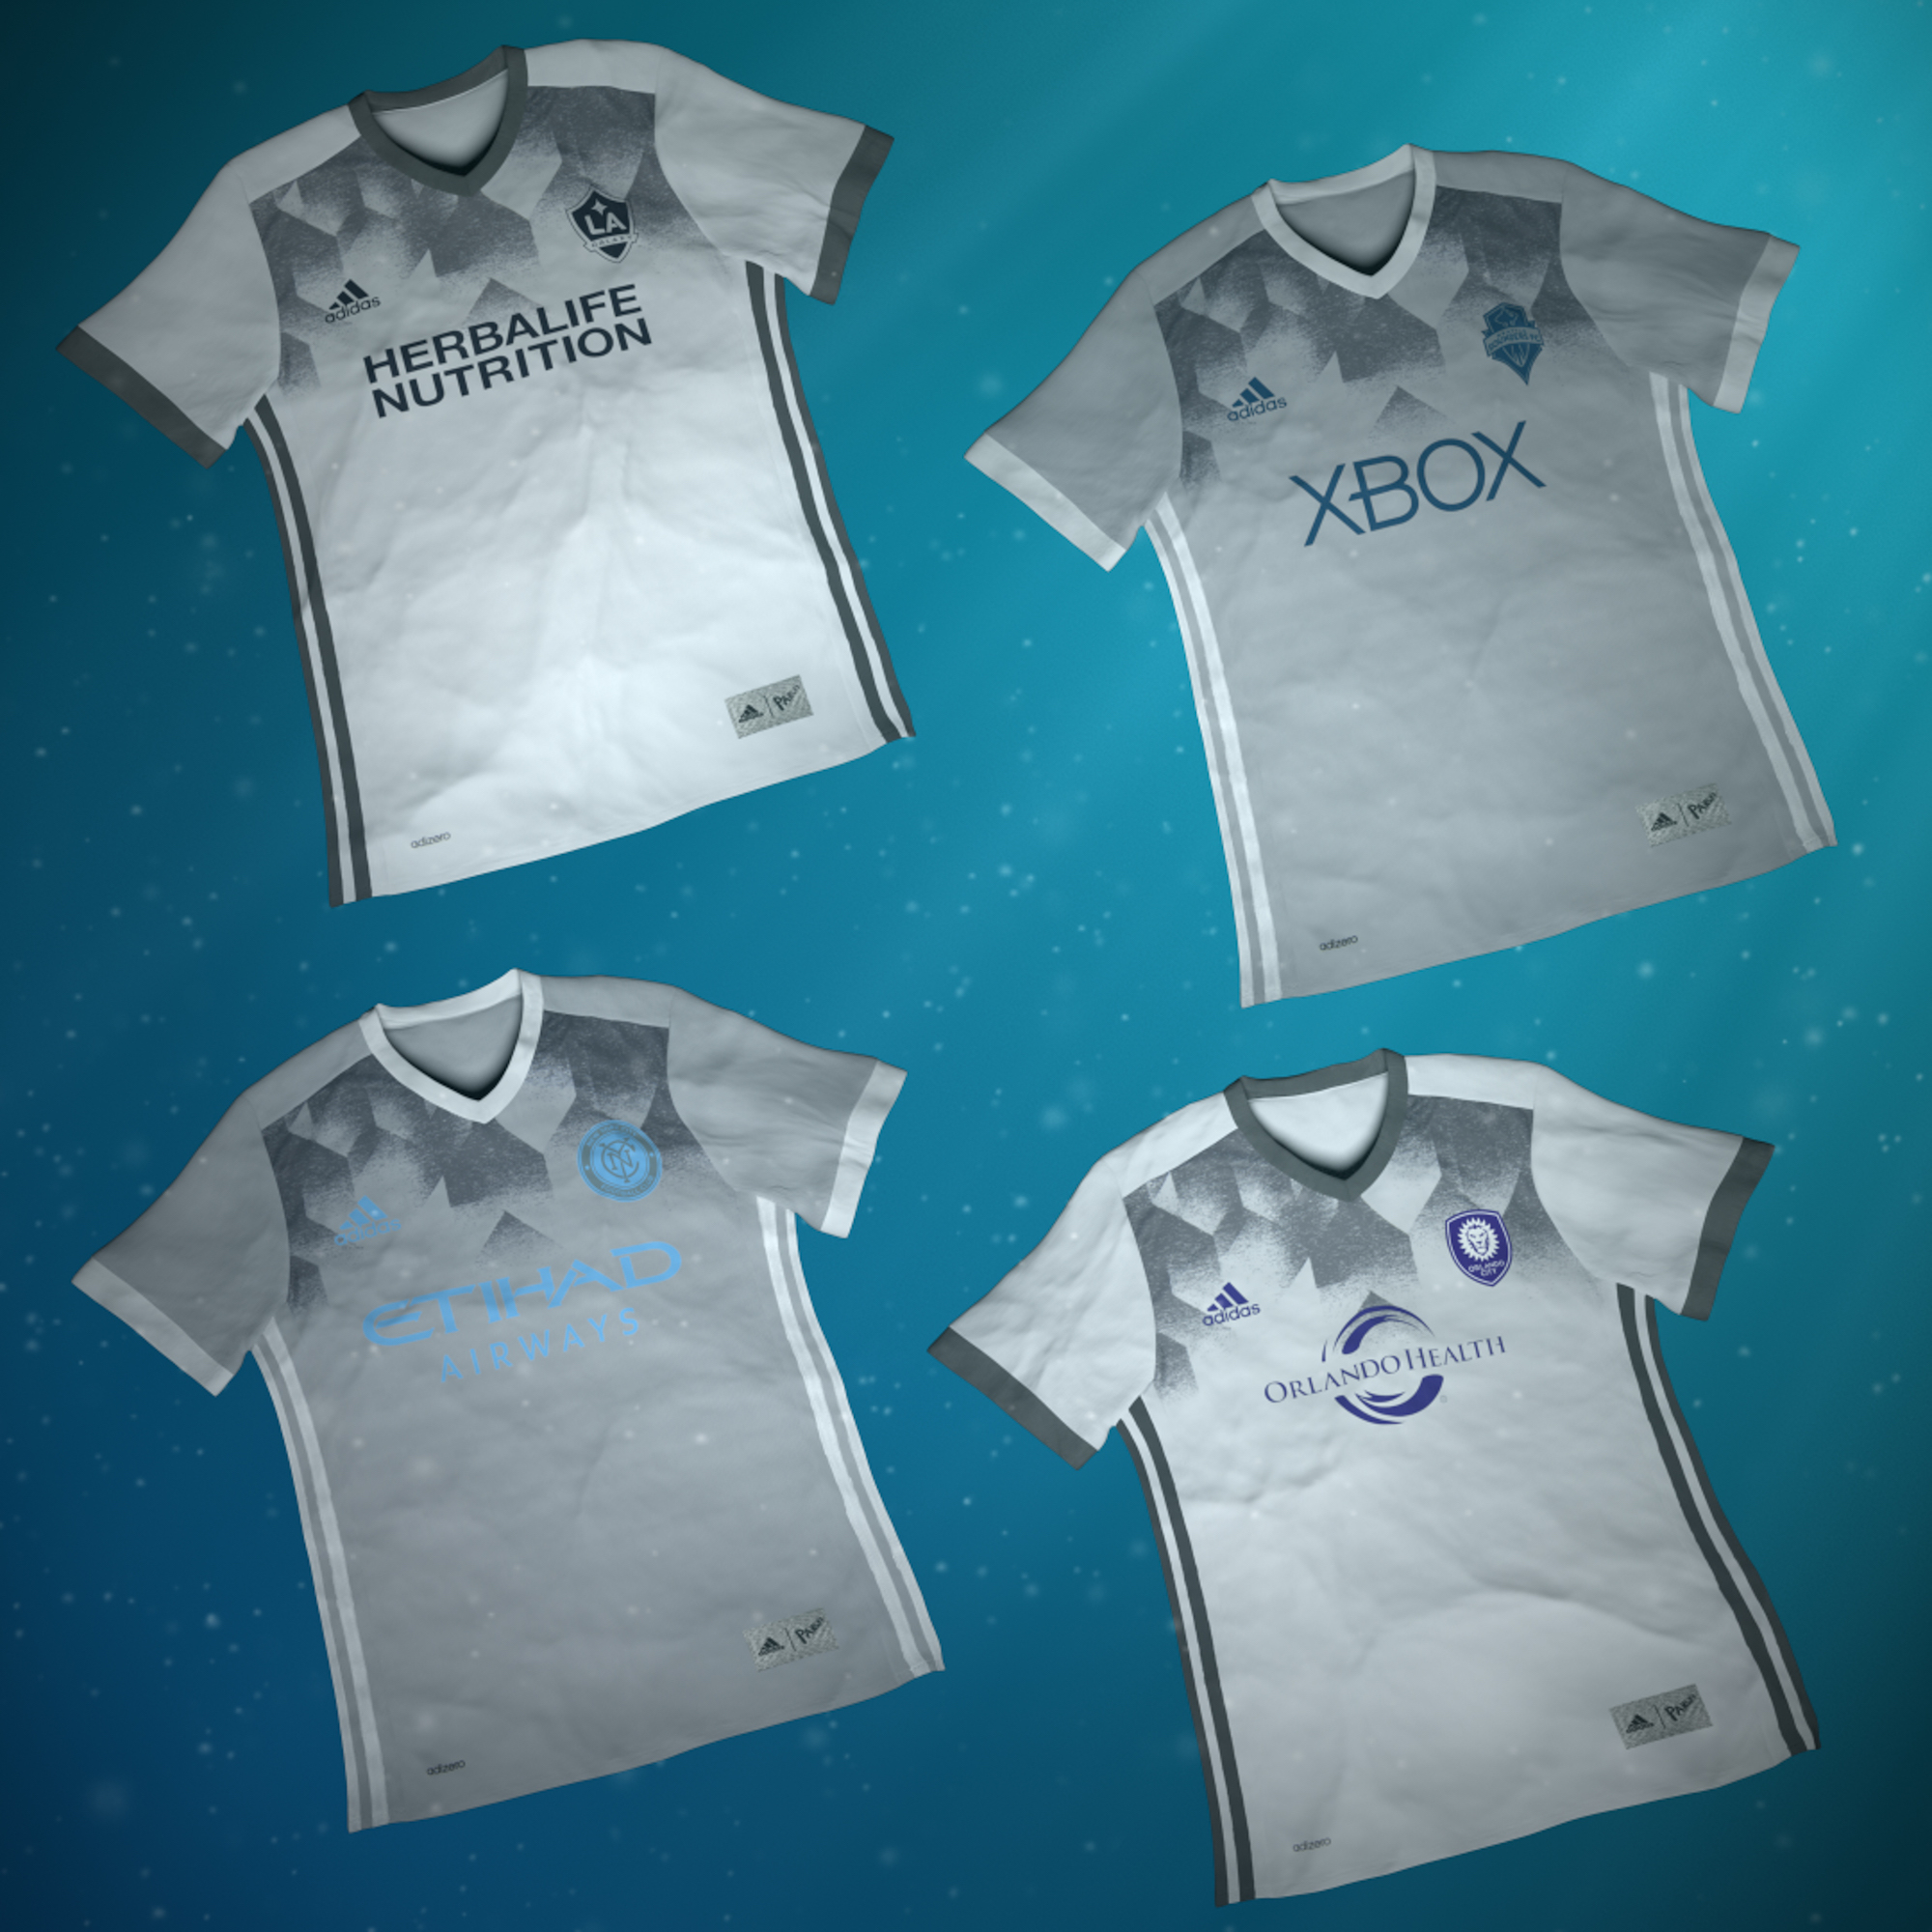 Adidas shirt design your own - Adidas Major League Soccer Parley For The Oceans Mls Club Jerseys 7